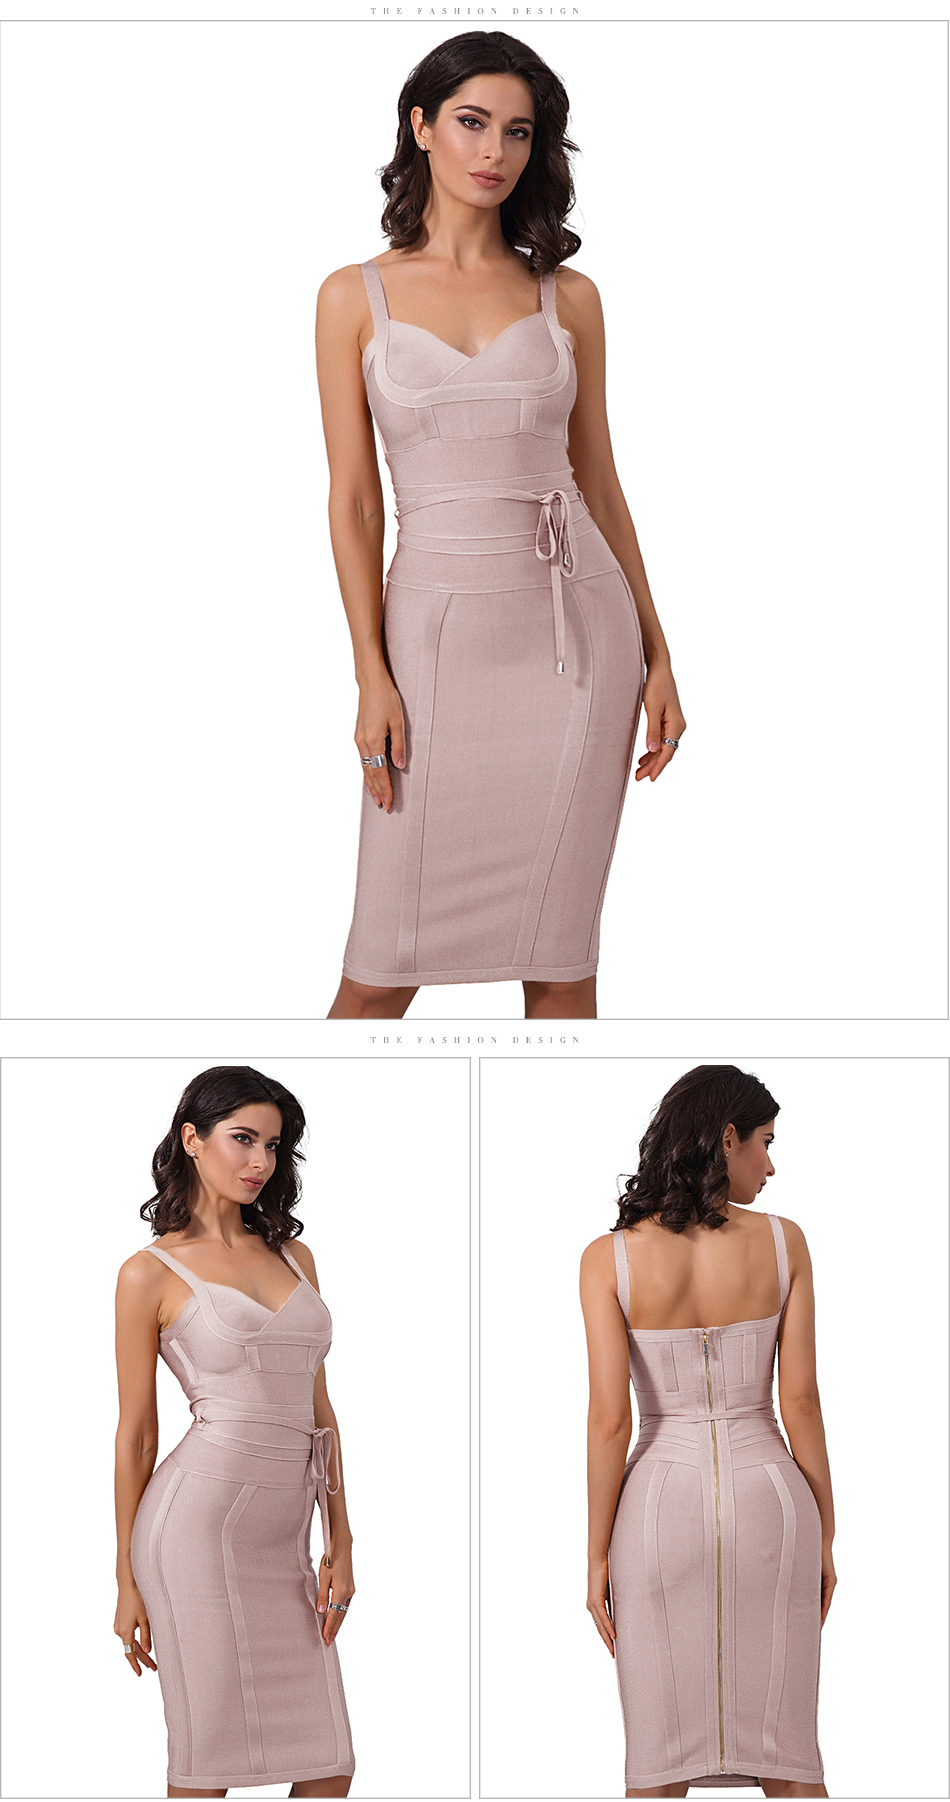 Chic Spaghetti Strap Bandage Bodycon Dress